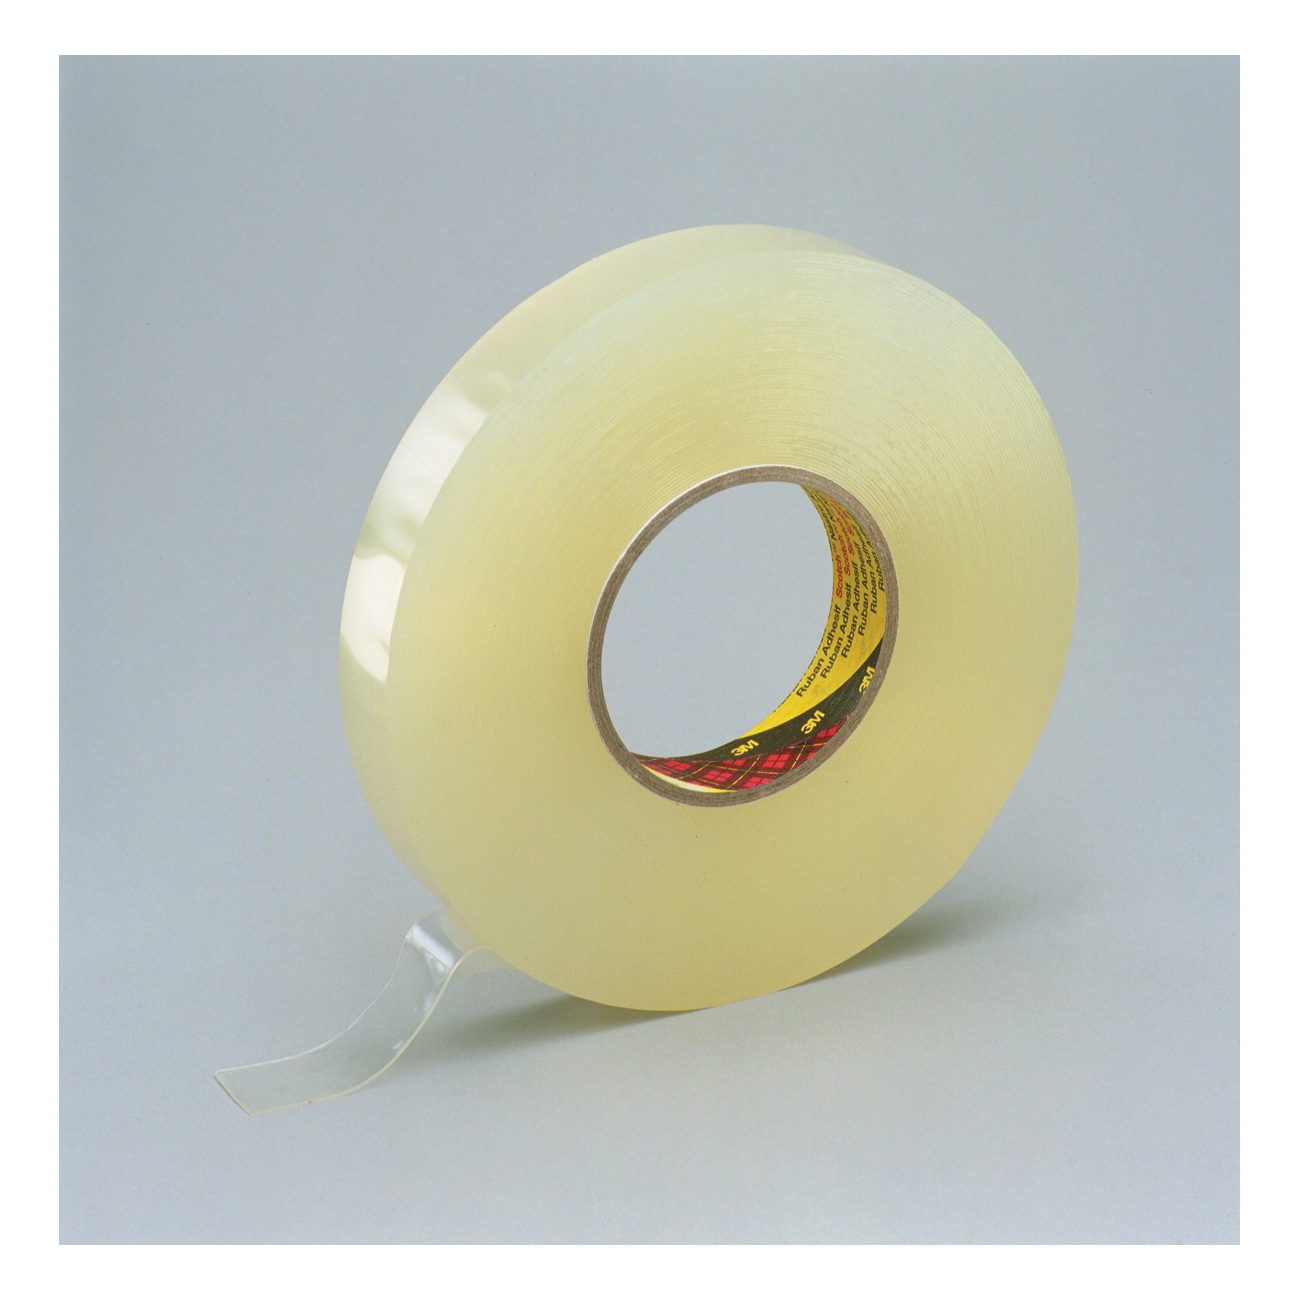 3M™ 021200-38545 Removable Double Coated Tape, 27 yd L x 1 in W, 31 mil THK, Acrylic Adhesive, Foam Backing, Clear